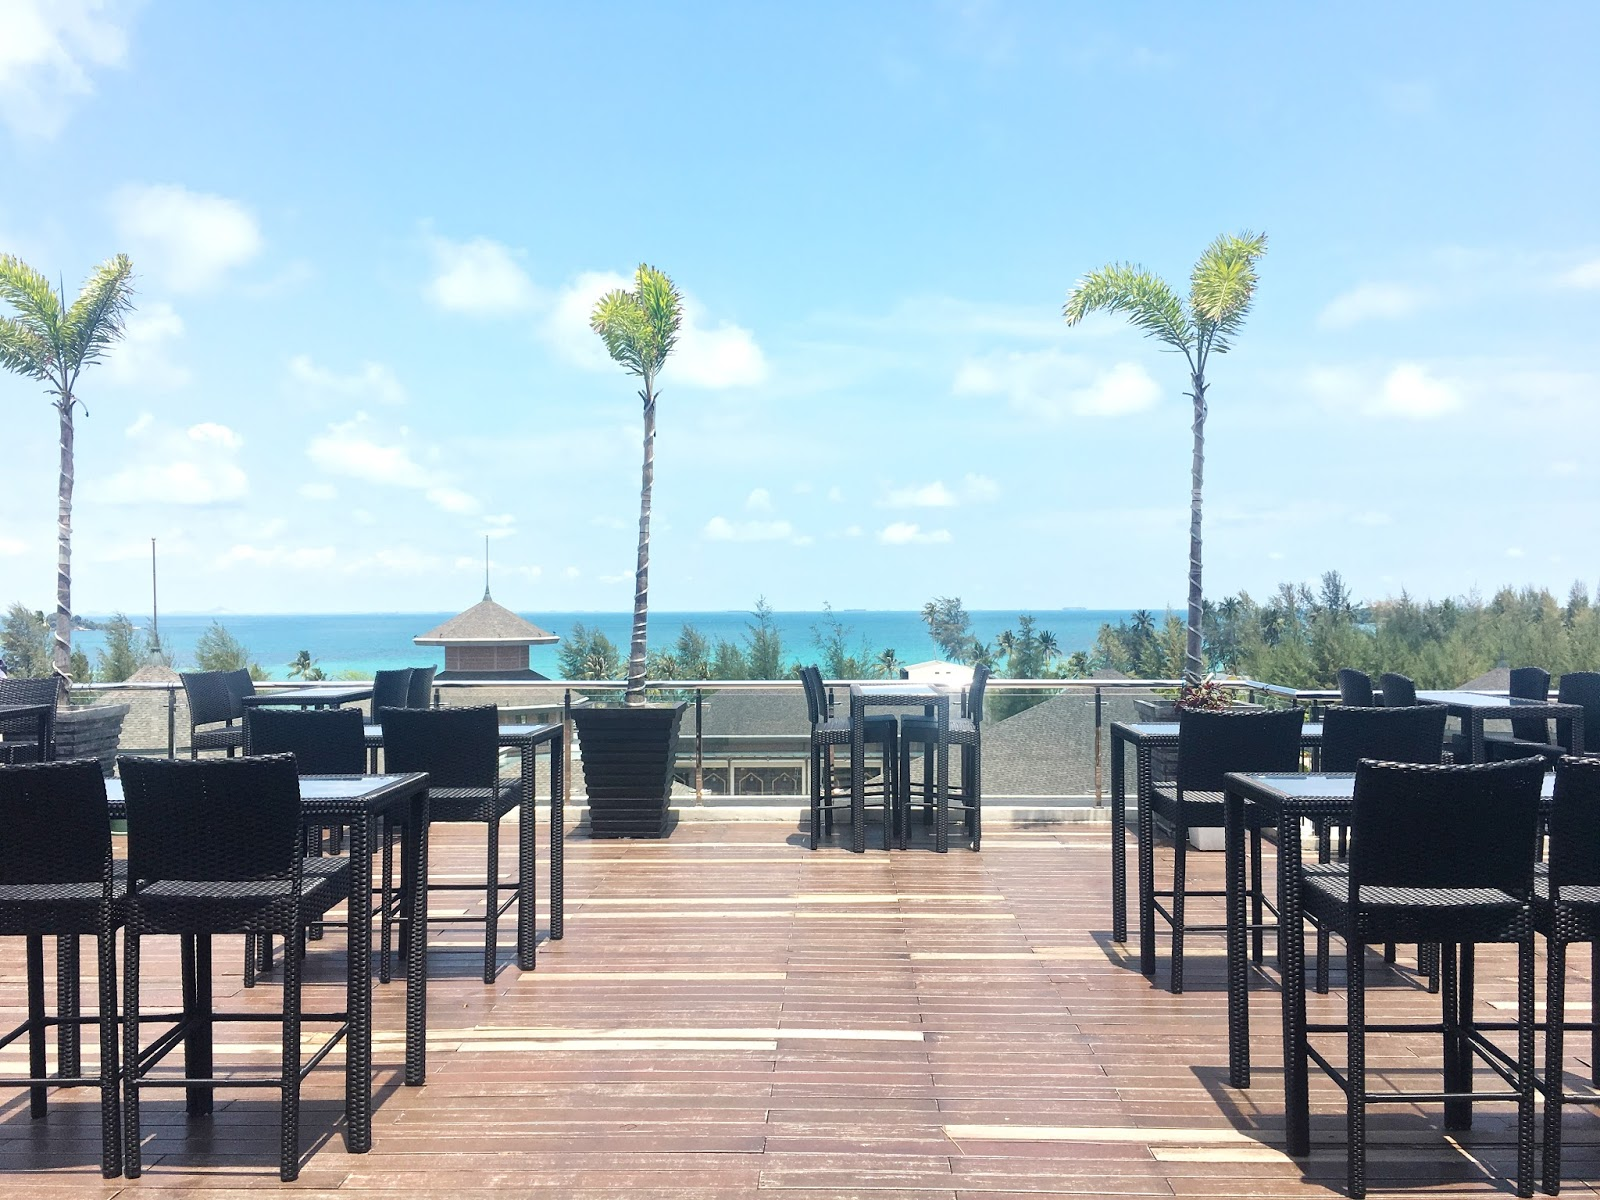 Bar 7 Rooftop Dining Outdoor